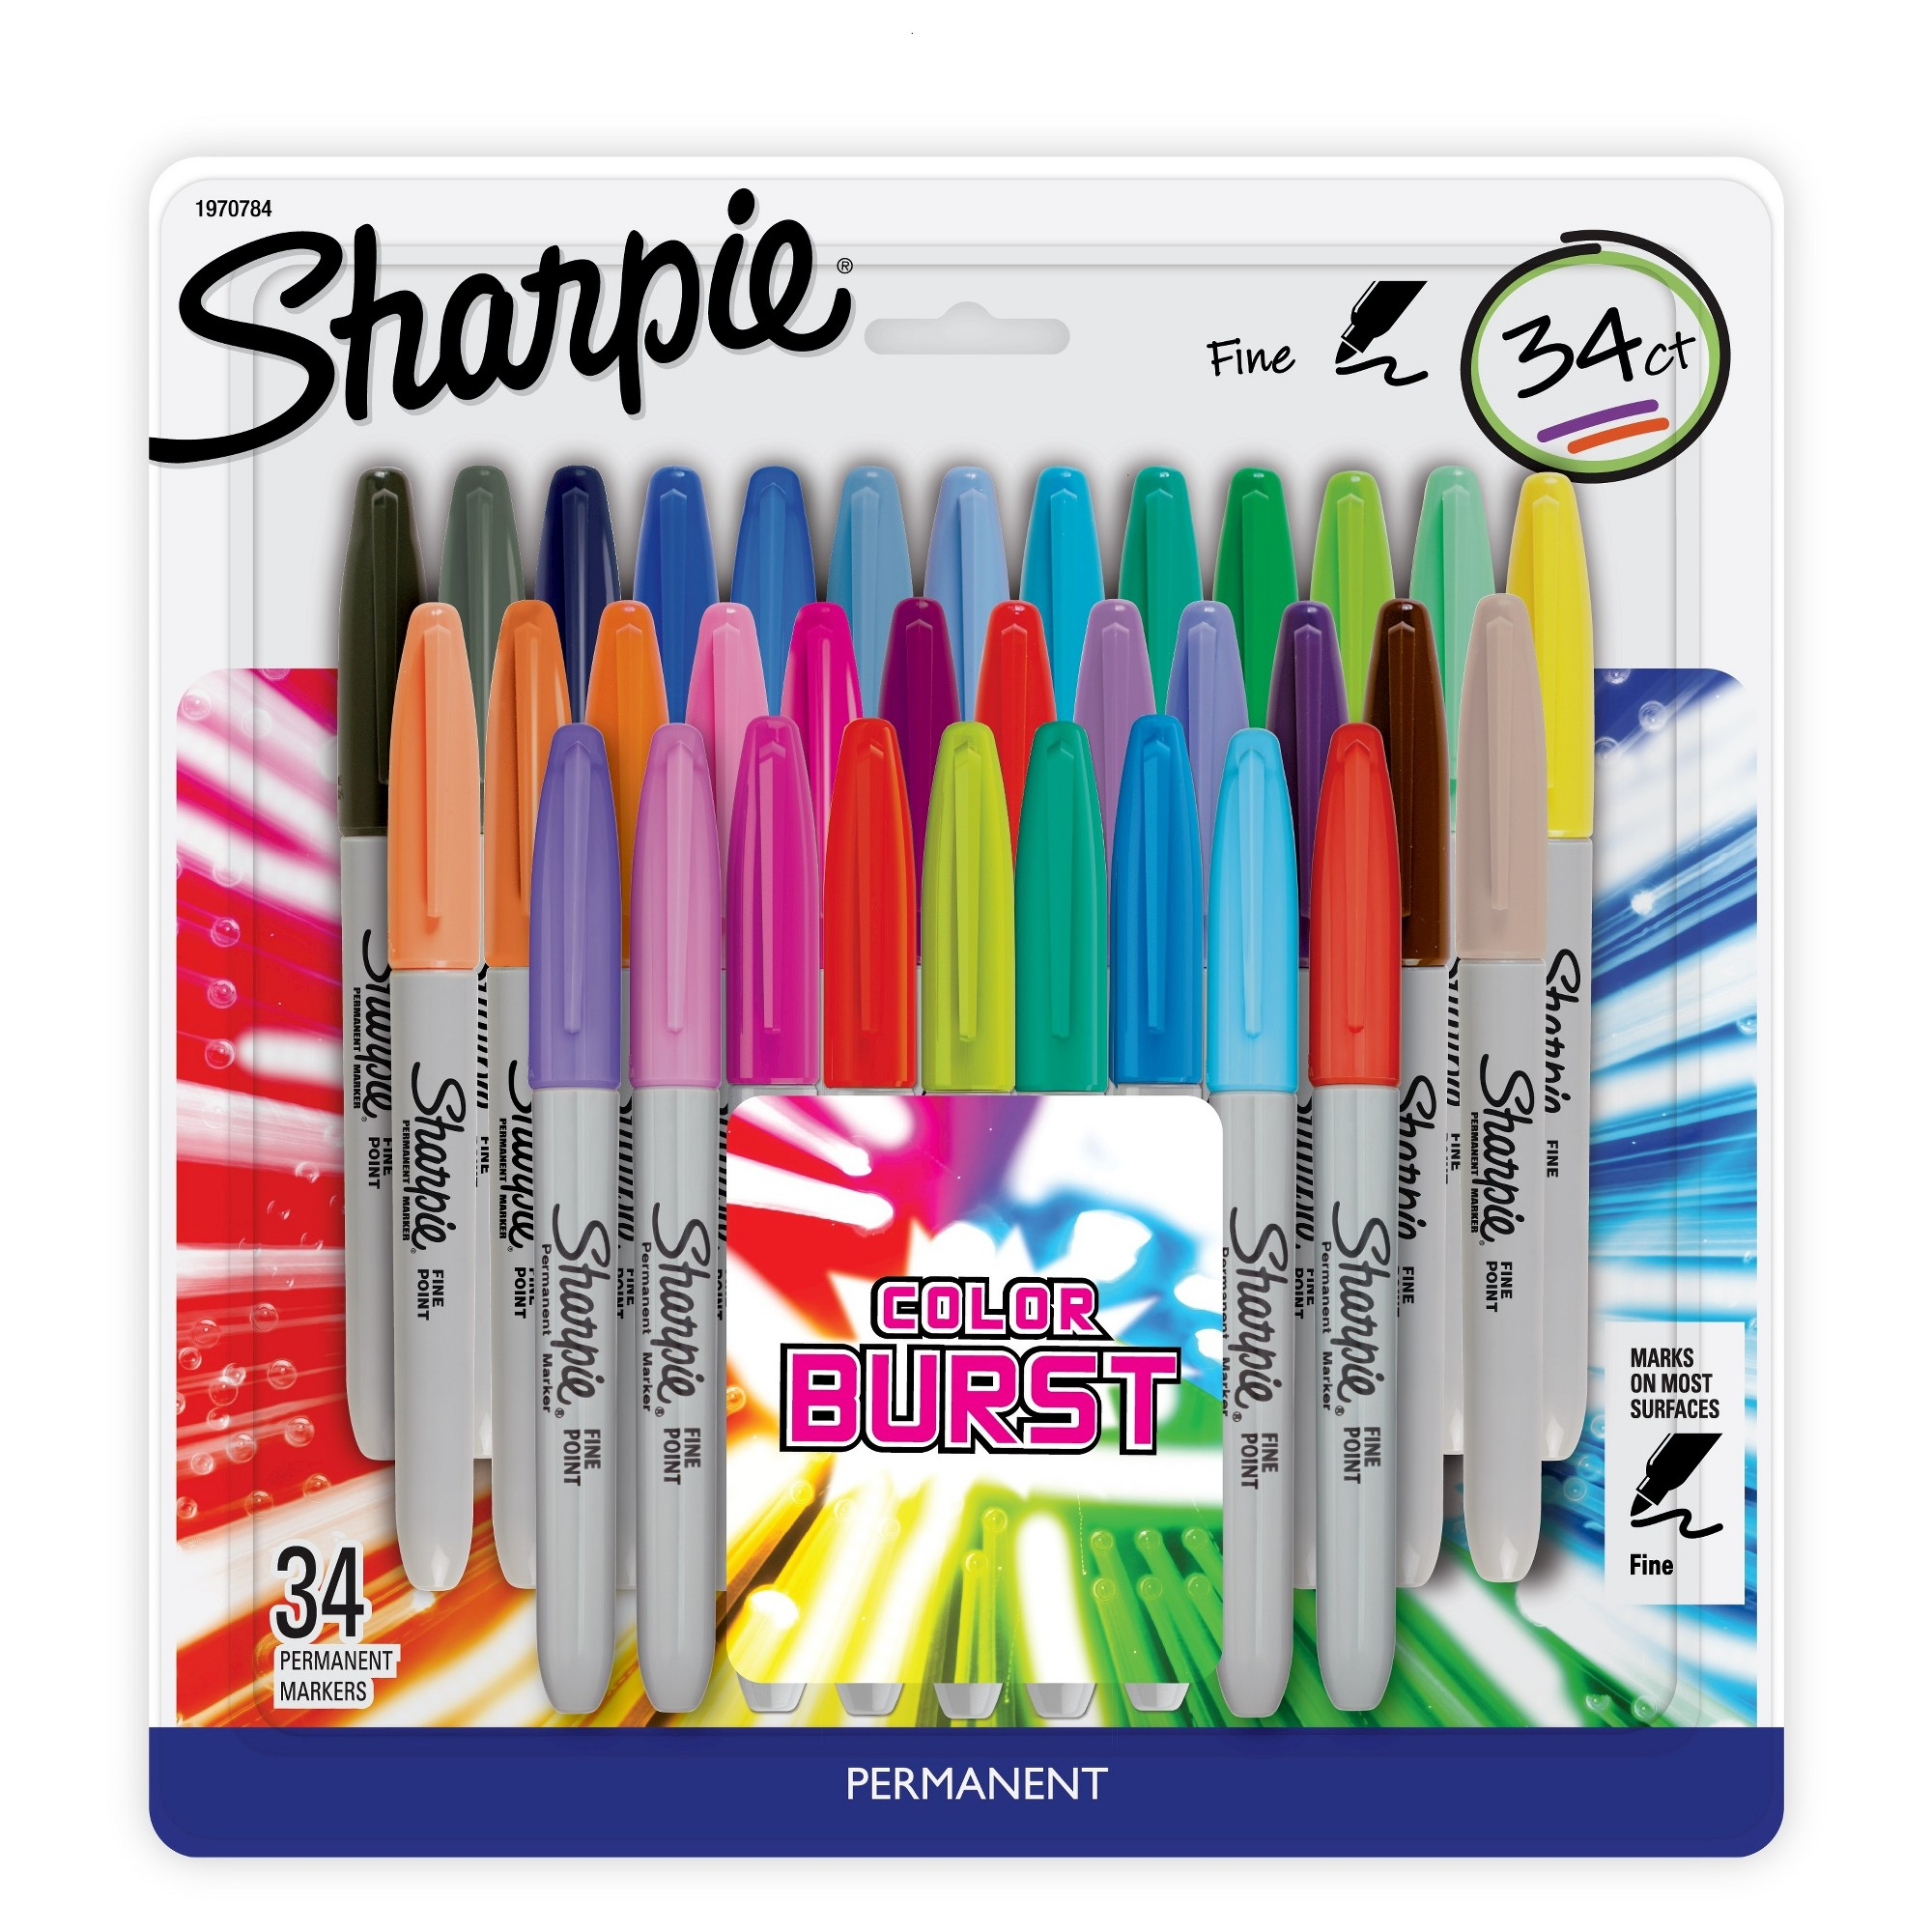 Sharpie Color Burst 34pk Permanent Markers Multicolor Ink